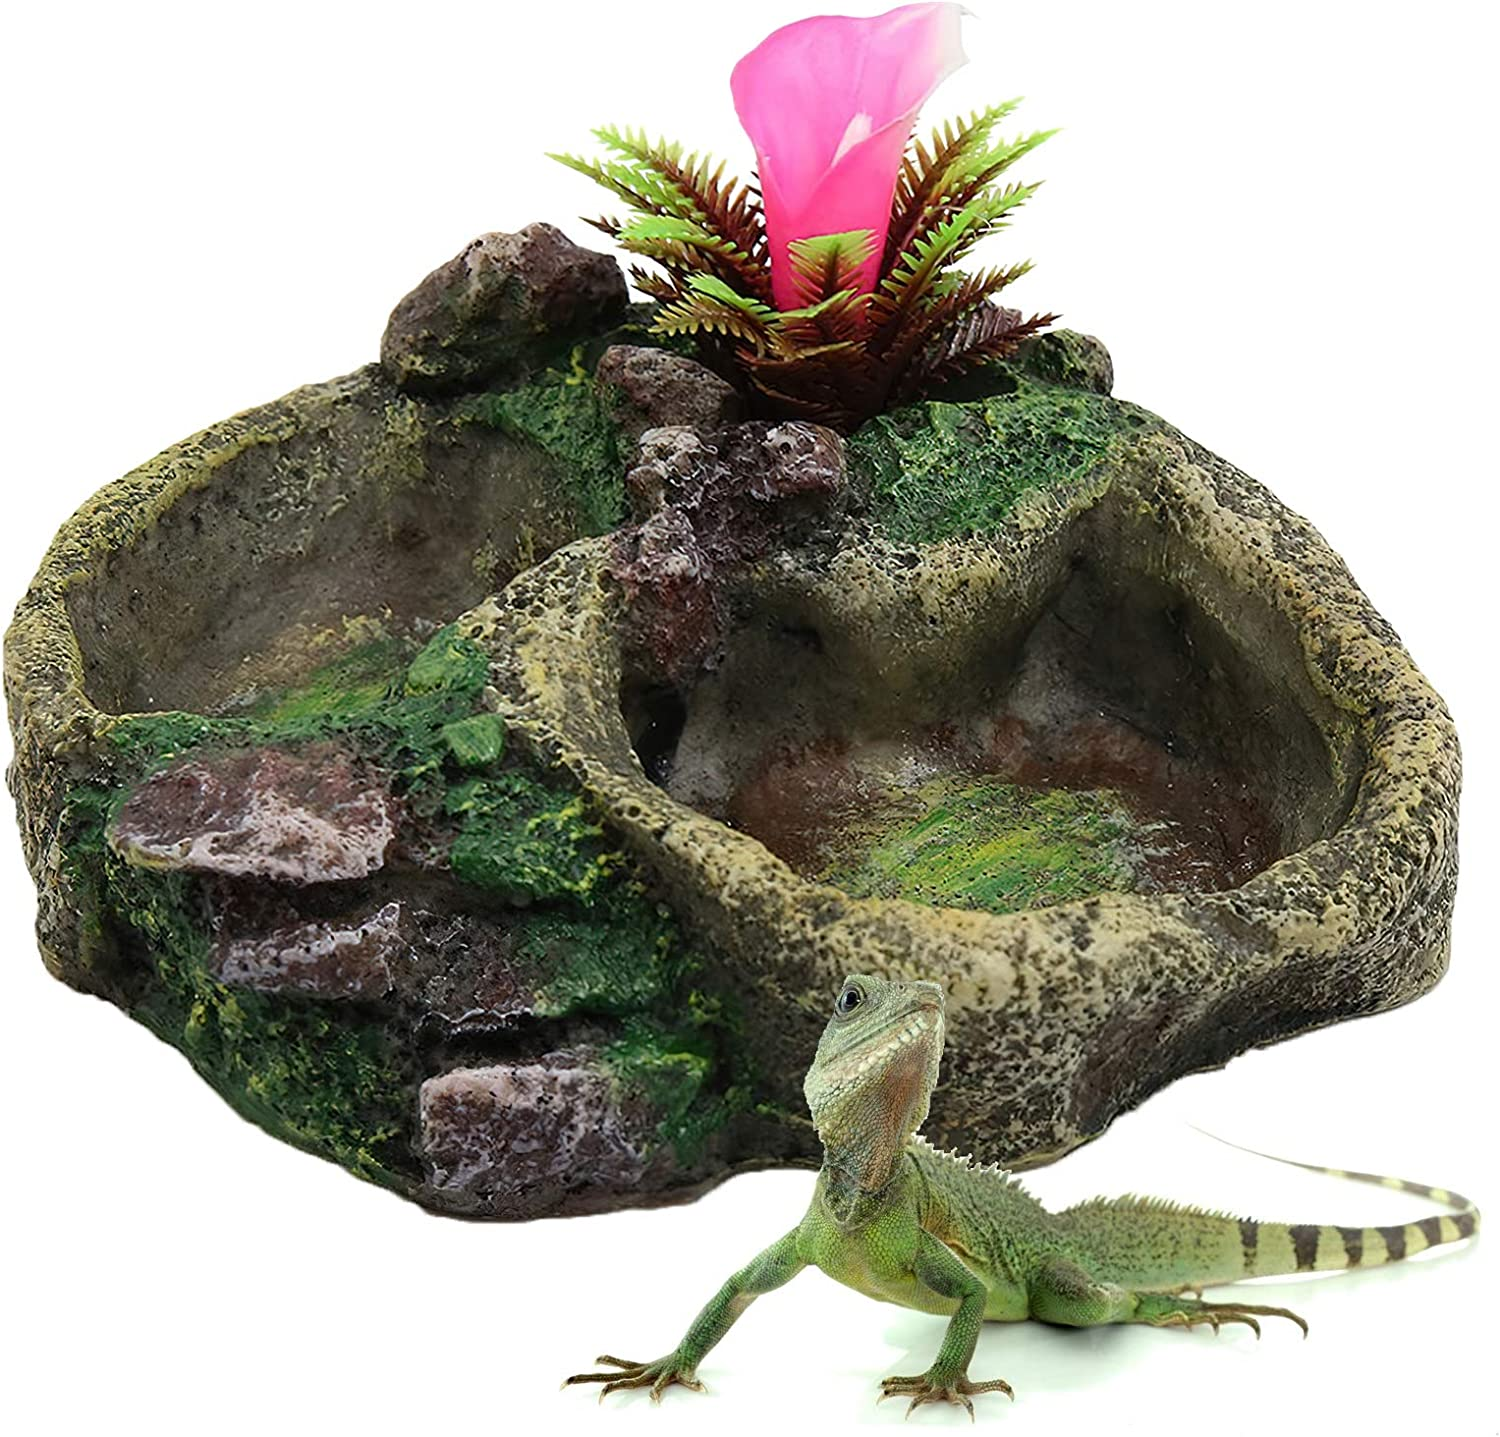 iFCOW Resin Feeder Bowl, Reptile Water Dish Food Bowl Resin Feeder Bowl for Tortoise Lizard